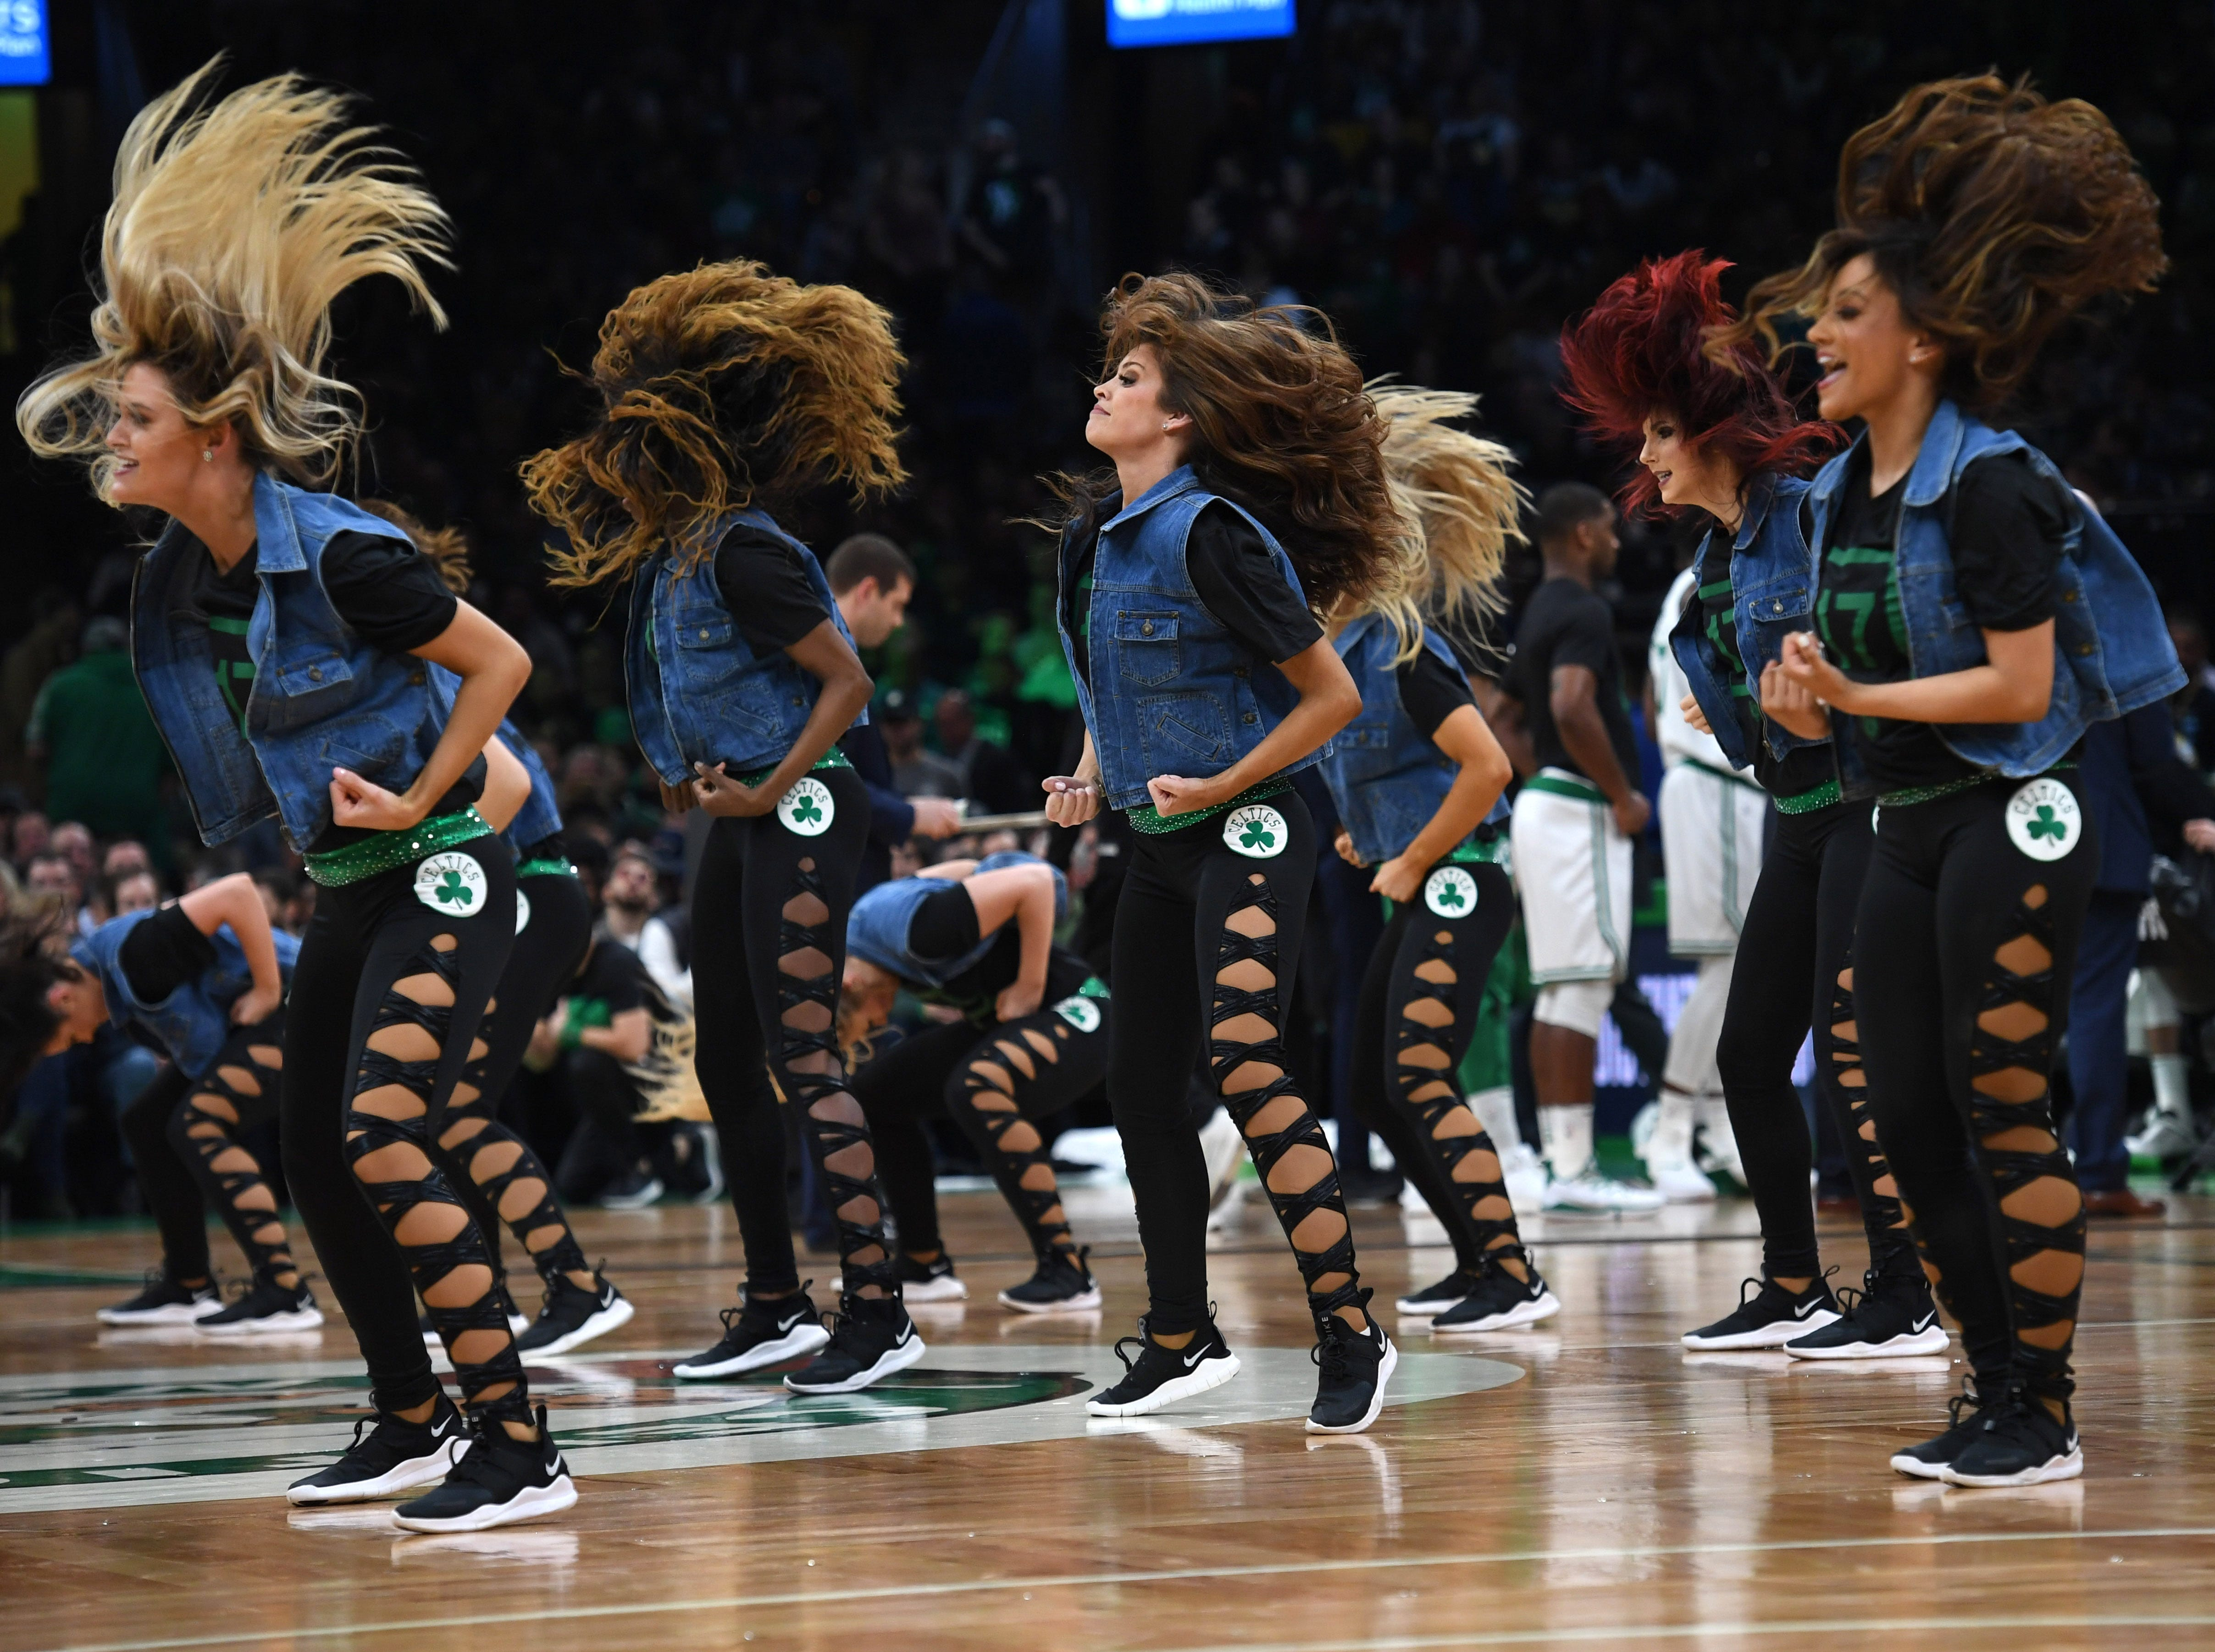 May 3: The Boston Celtics dancers perform during the first half of Game 3 against the Milwaukee Bucks.